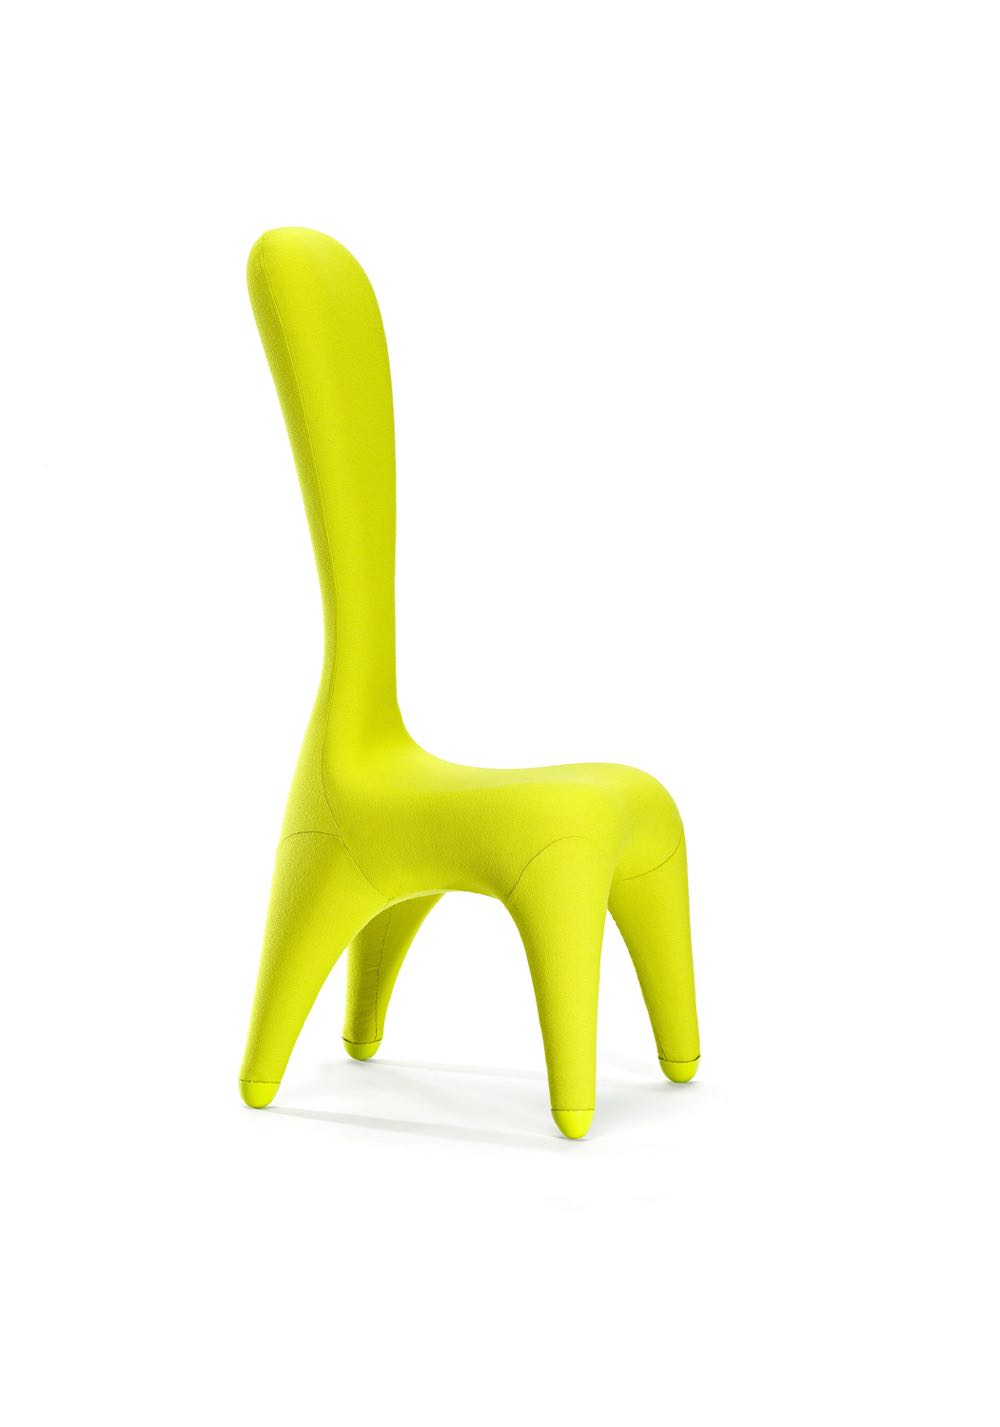 Chris Connell 'Pepe' chair designed in 1992 and produced by Merchants of Australian Products Pty. Ltd, Melbourne.   Injection-molded CFC-free flexible polyurethane foam, self-skinning polyurethane, wool and steel. 131.5 x 50.8 x 61 cm